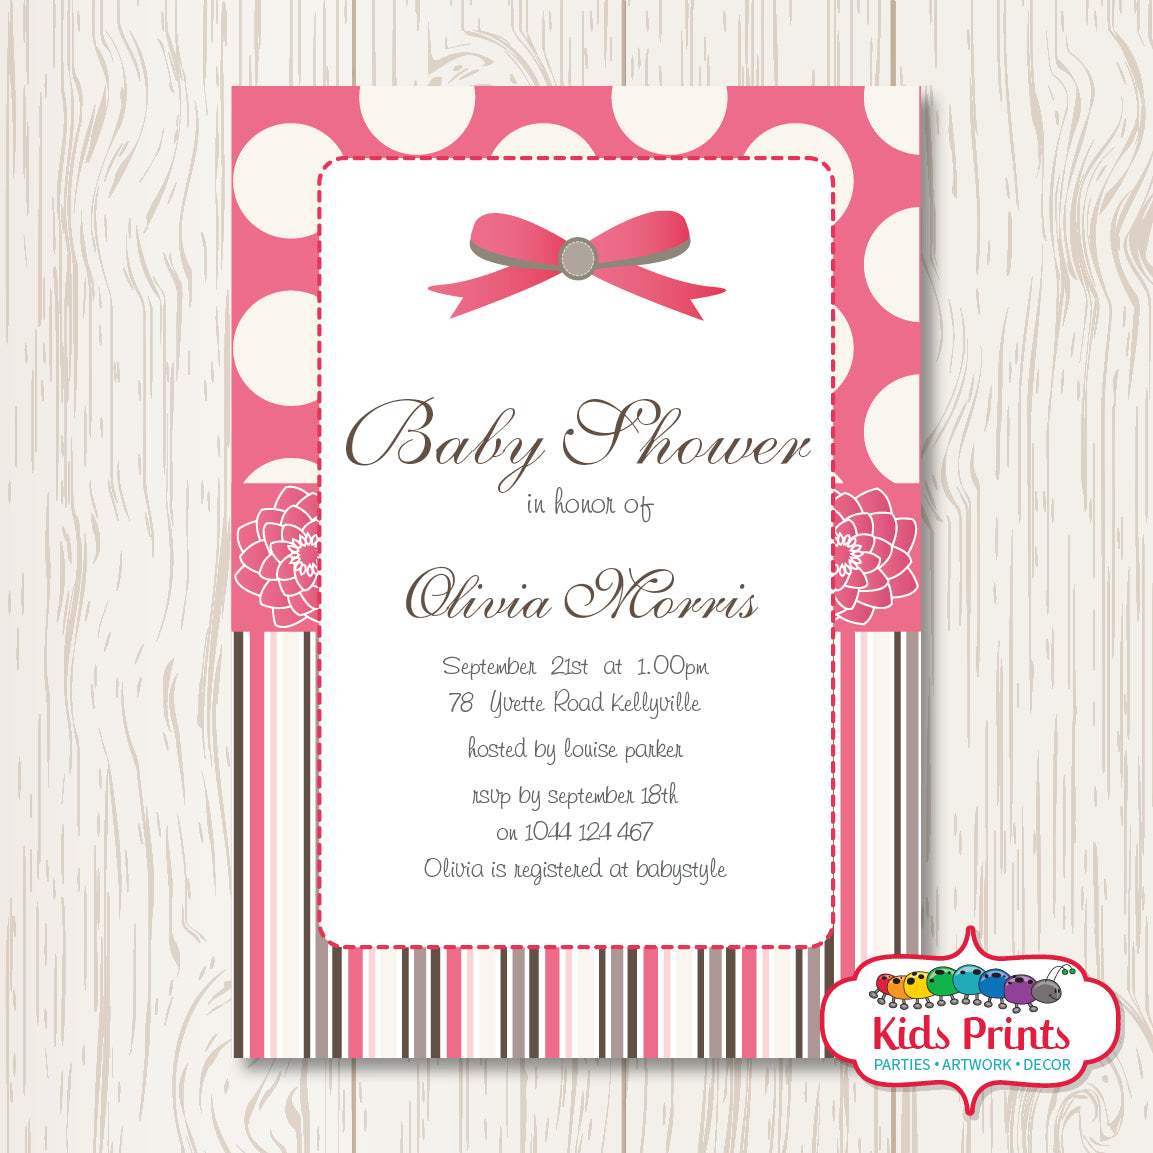 Pink Bow | Printable Baby Shower Invitation - Kids Prints Online - kids wall art printable - nursery art printable - printable invitations - digital invitations - kids wall art - kids prints